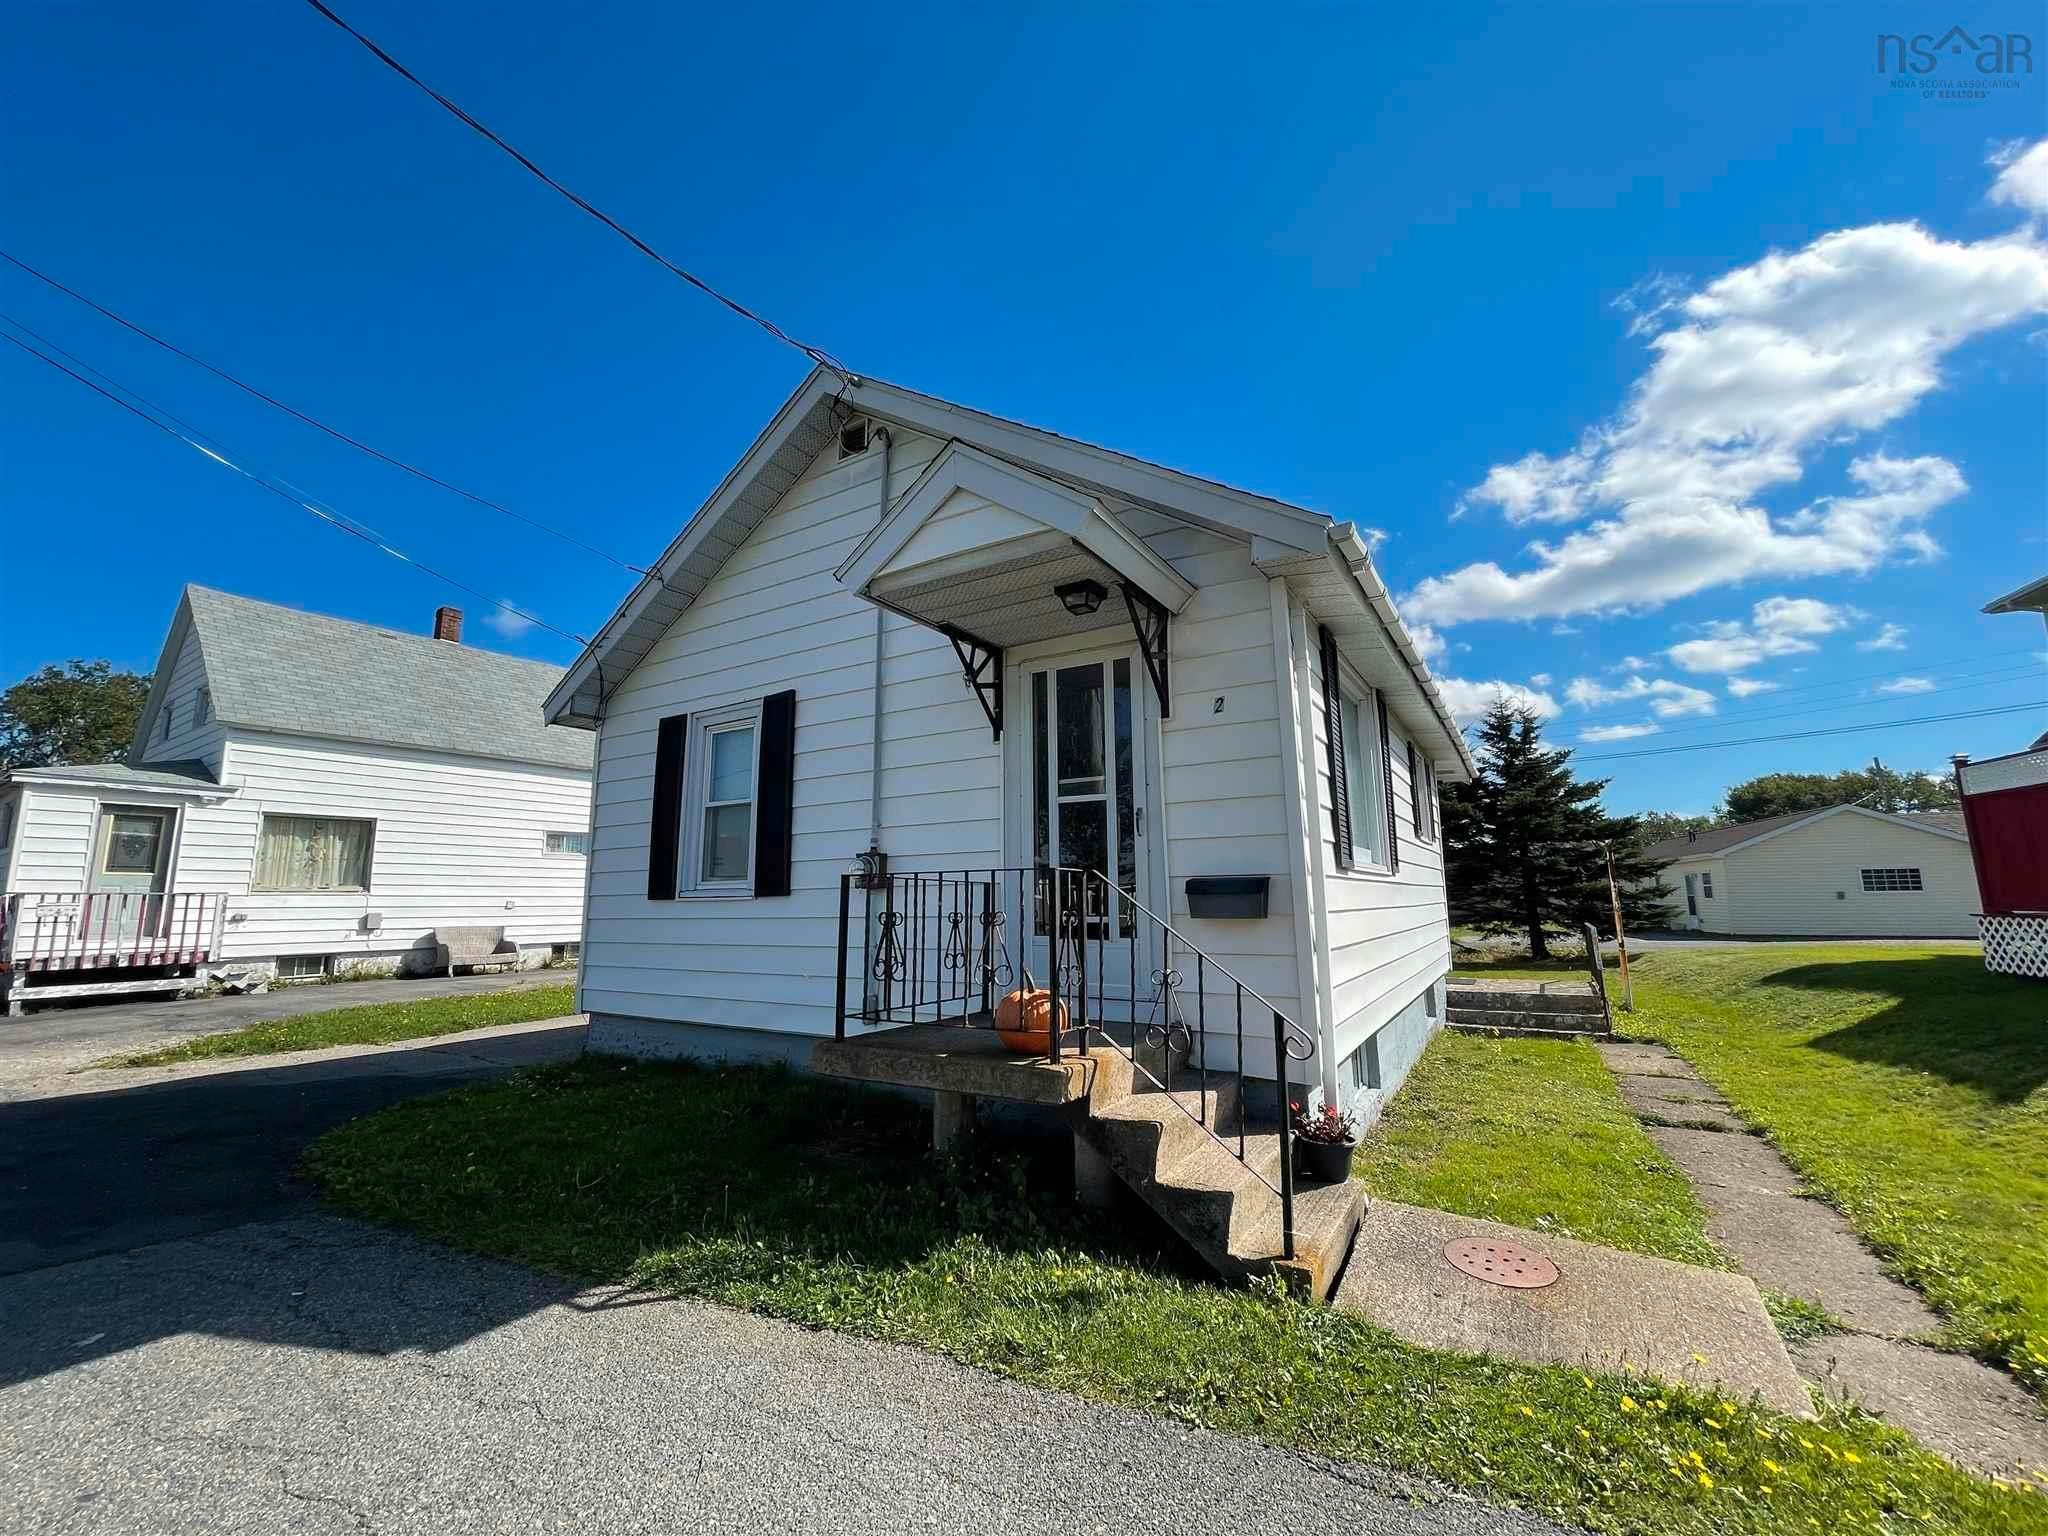 Main Photo: 2 Shaws Lane in Glace Bay: 203-Glace Bay Residential for sale (Cape Breton)  : MLS®# 202124672